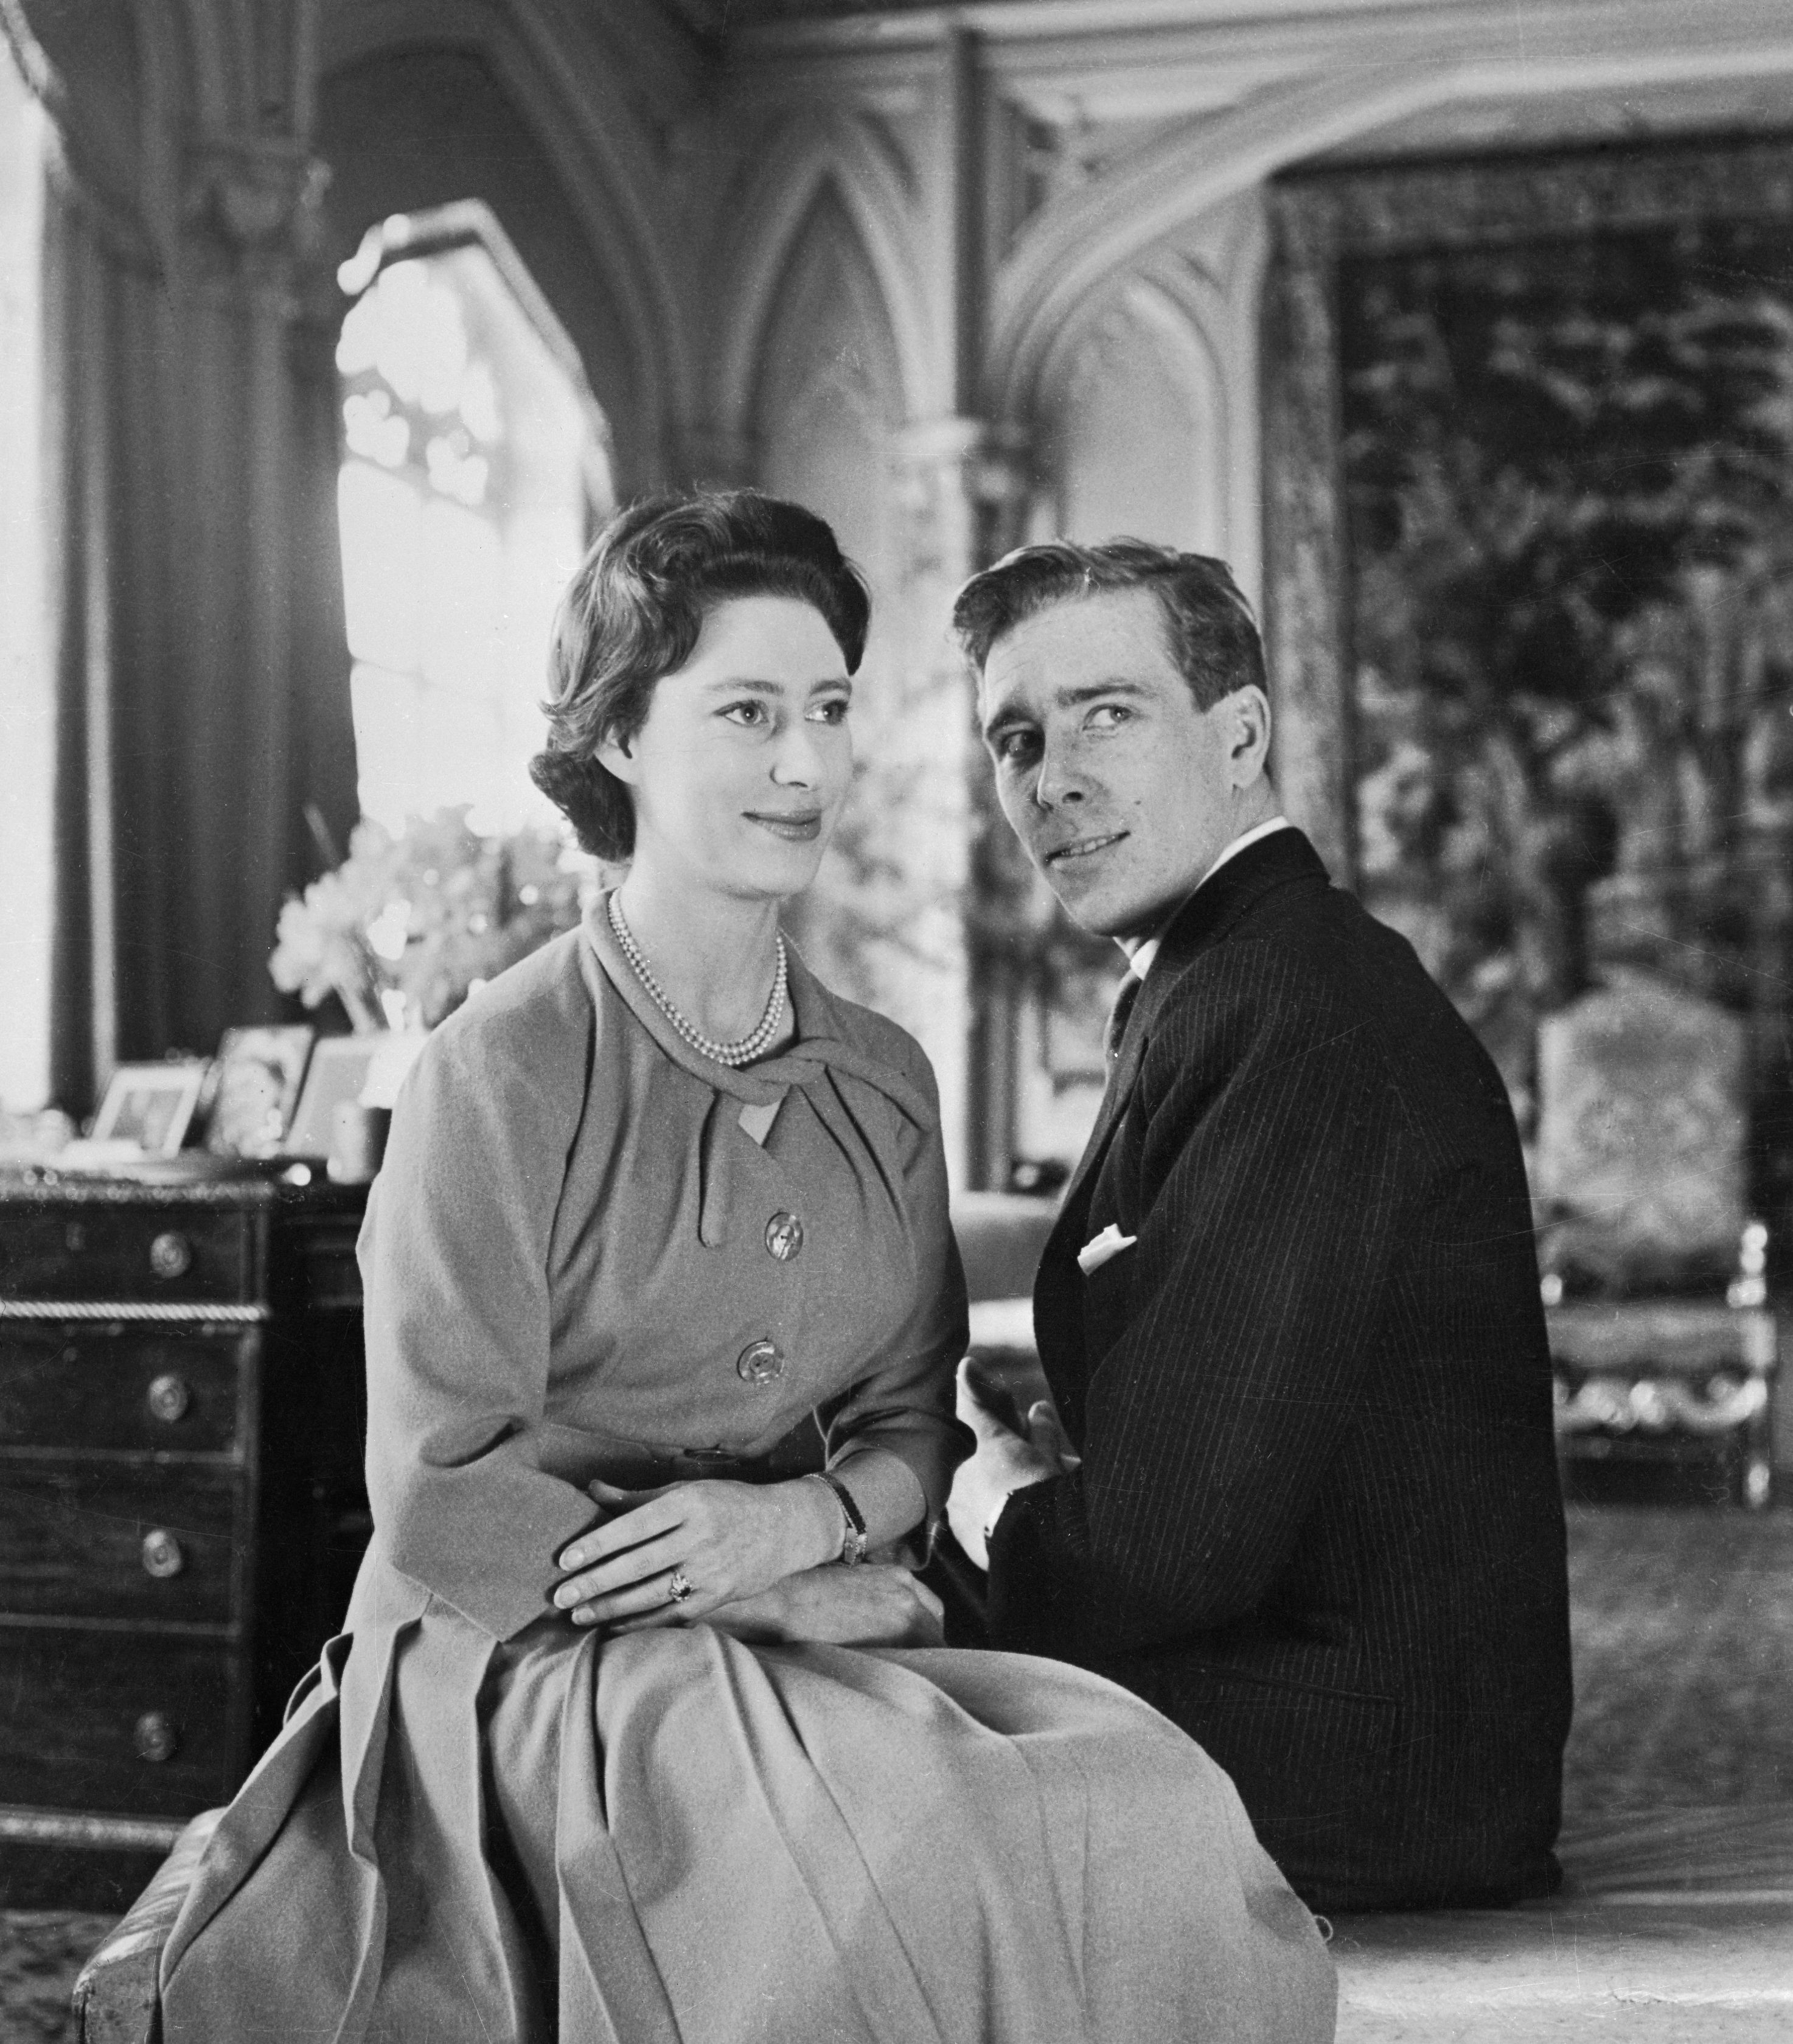 Did Princess Margaret S Husband Cheat On Her Per The Crown